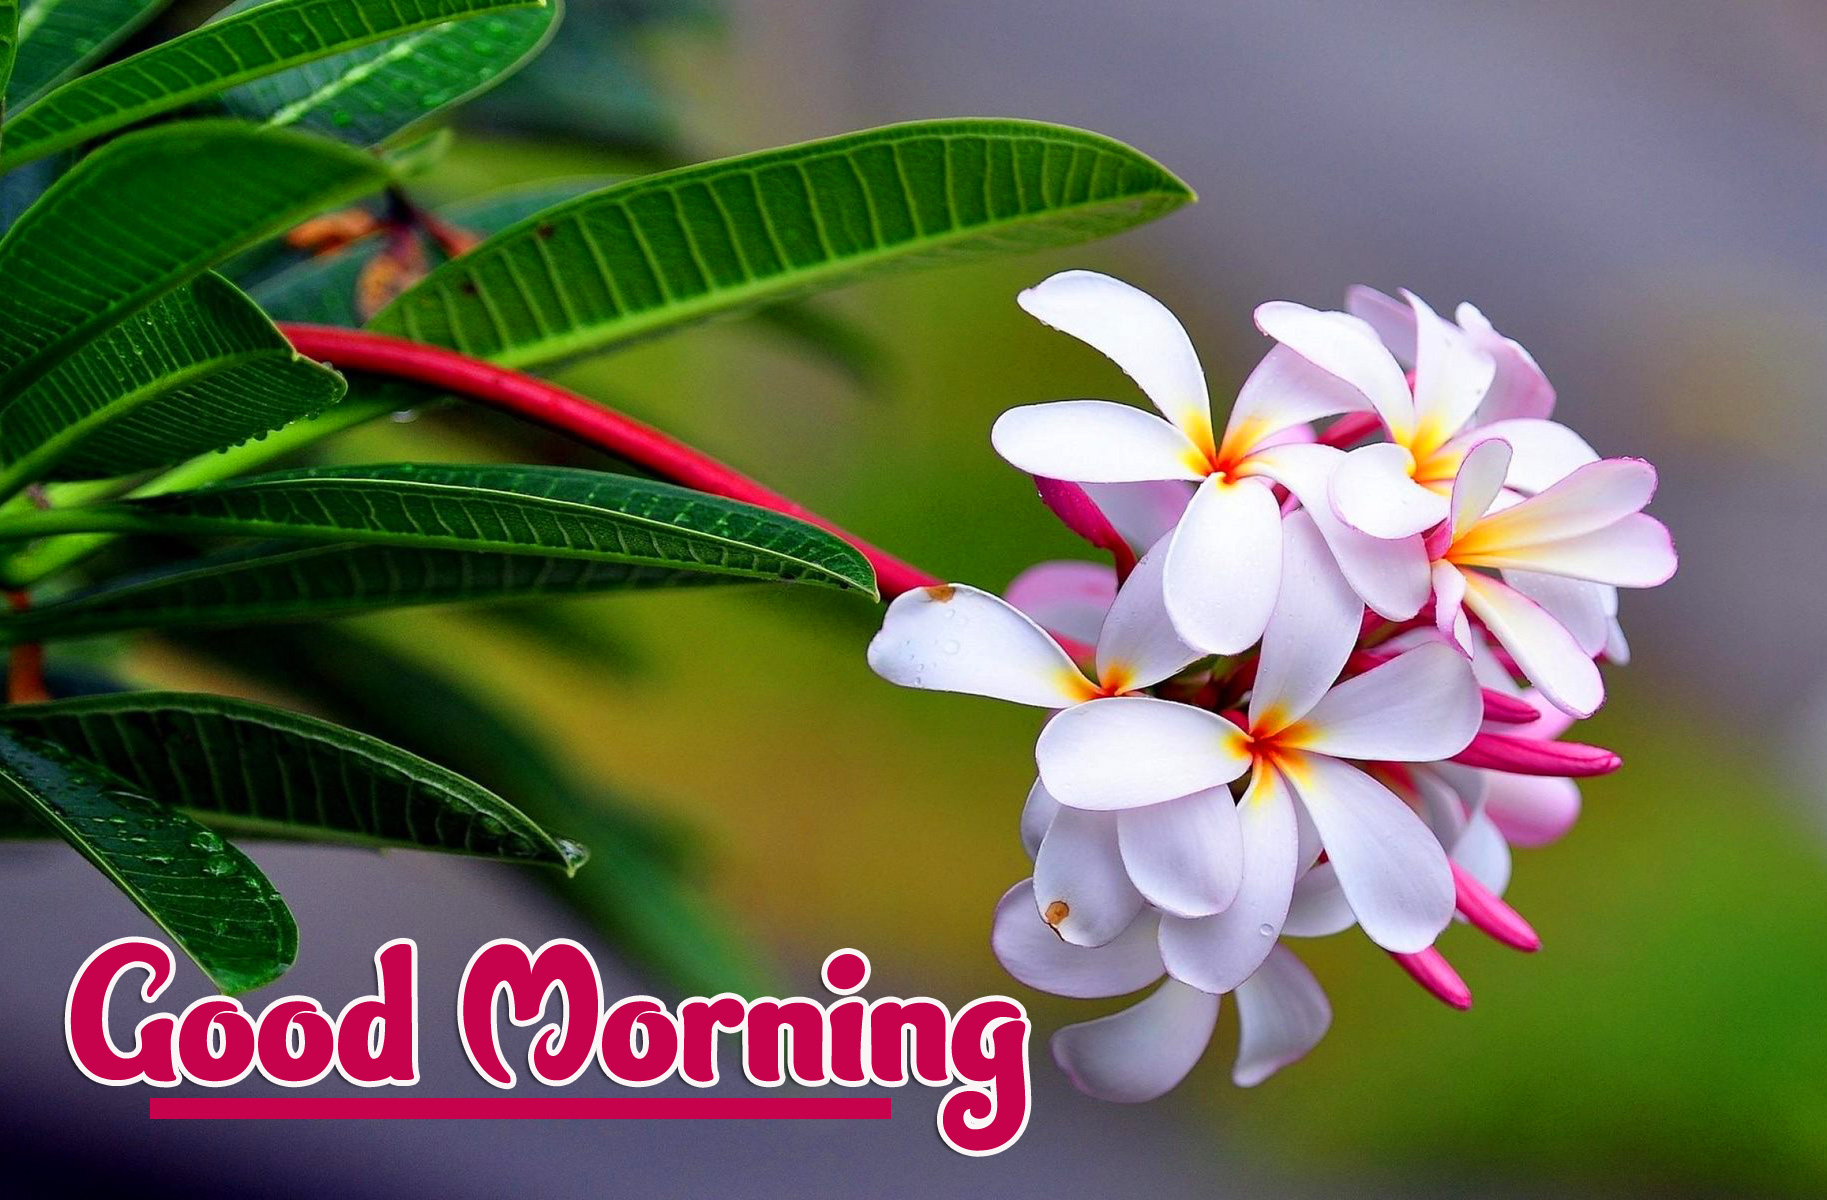 Good Morning Wallpaper Pictures for Facebook